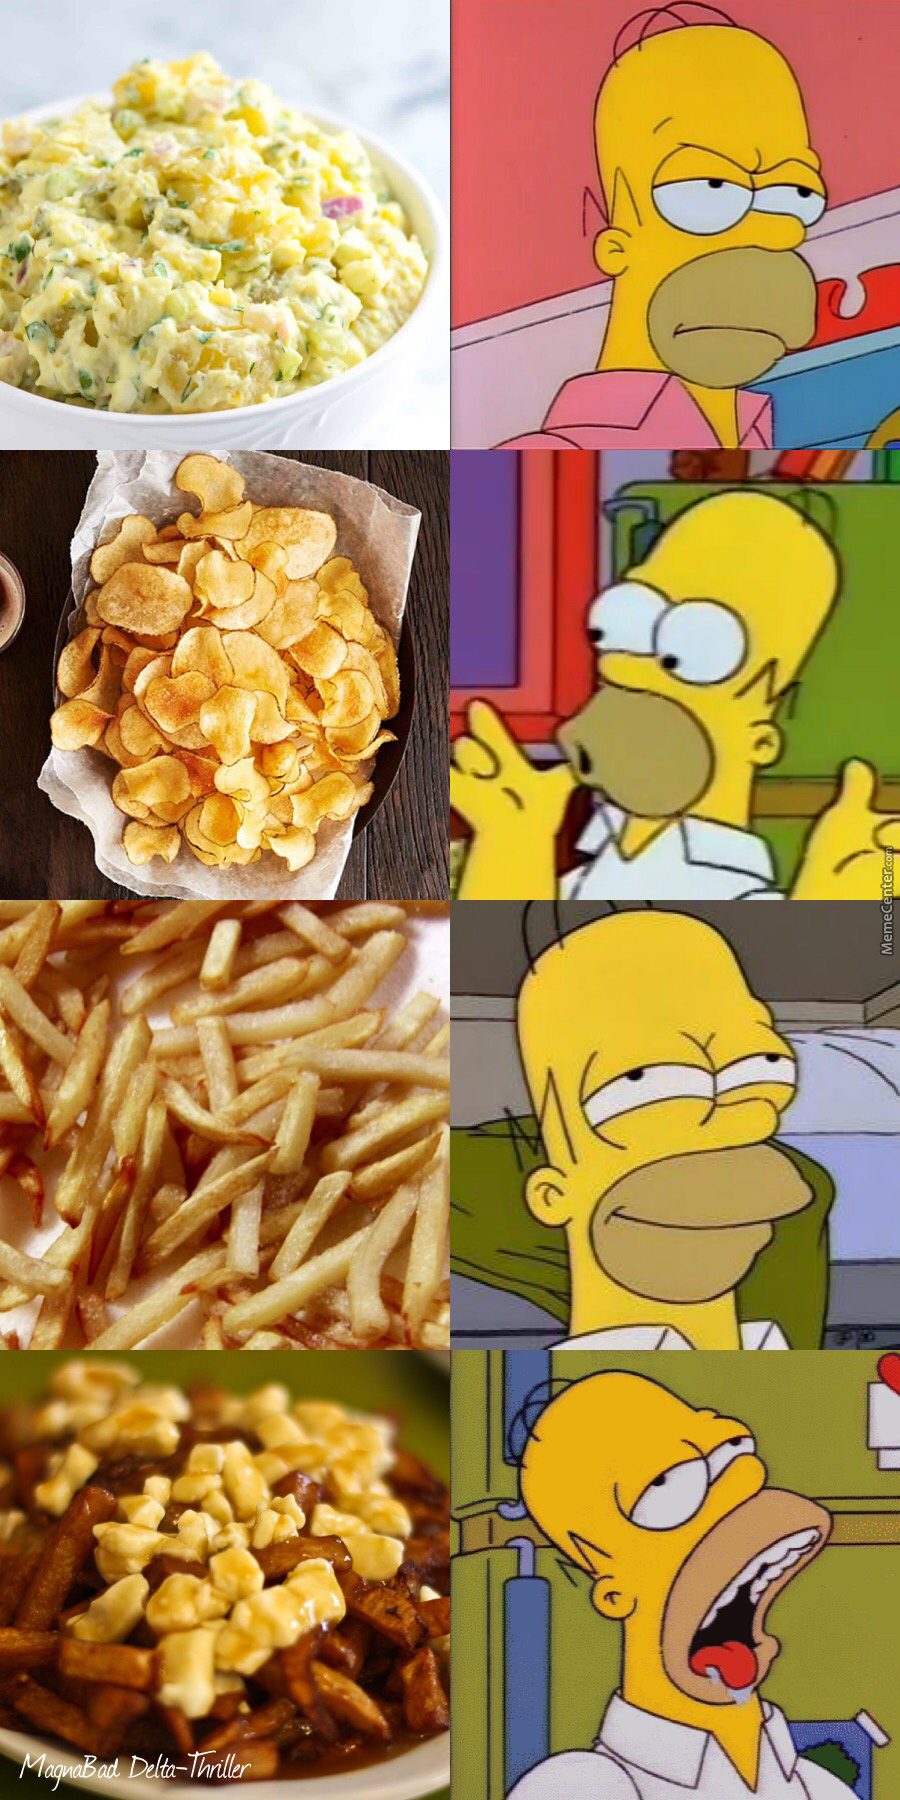 Poutine Is The Best Potato Based Food, Don'T @ Me